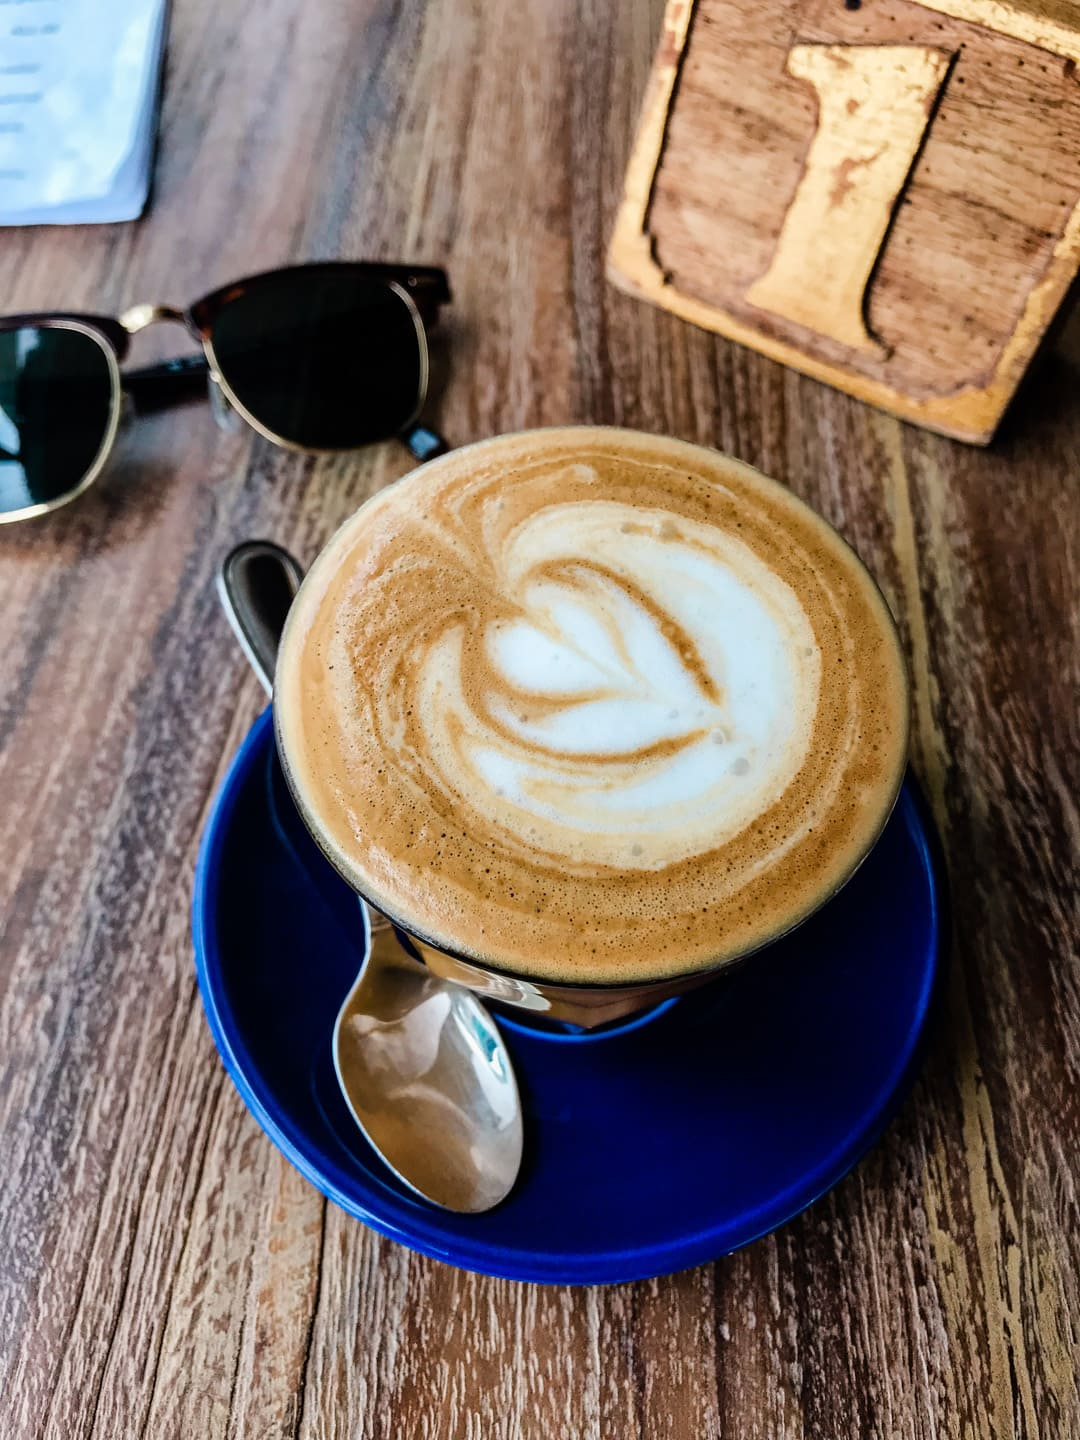 A small coconut milk latte with a small spoon on a blue plate. Rayban sunglasses and a wooden table marker with number one on it in the background.